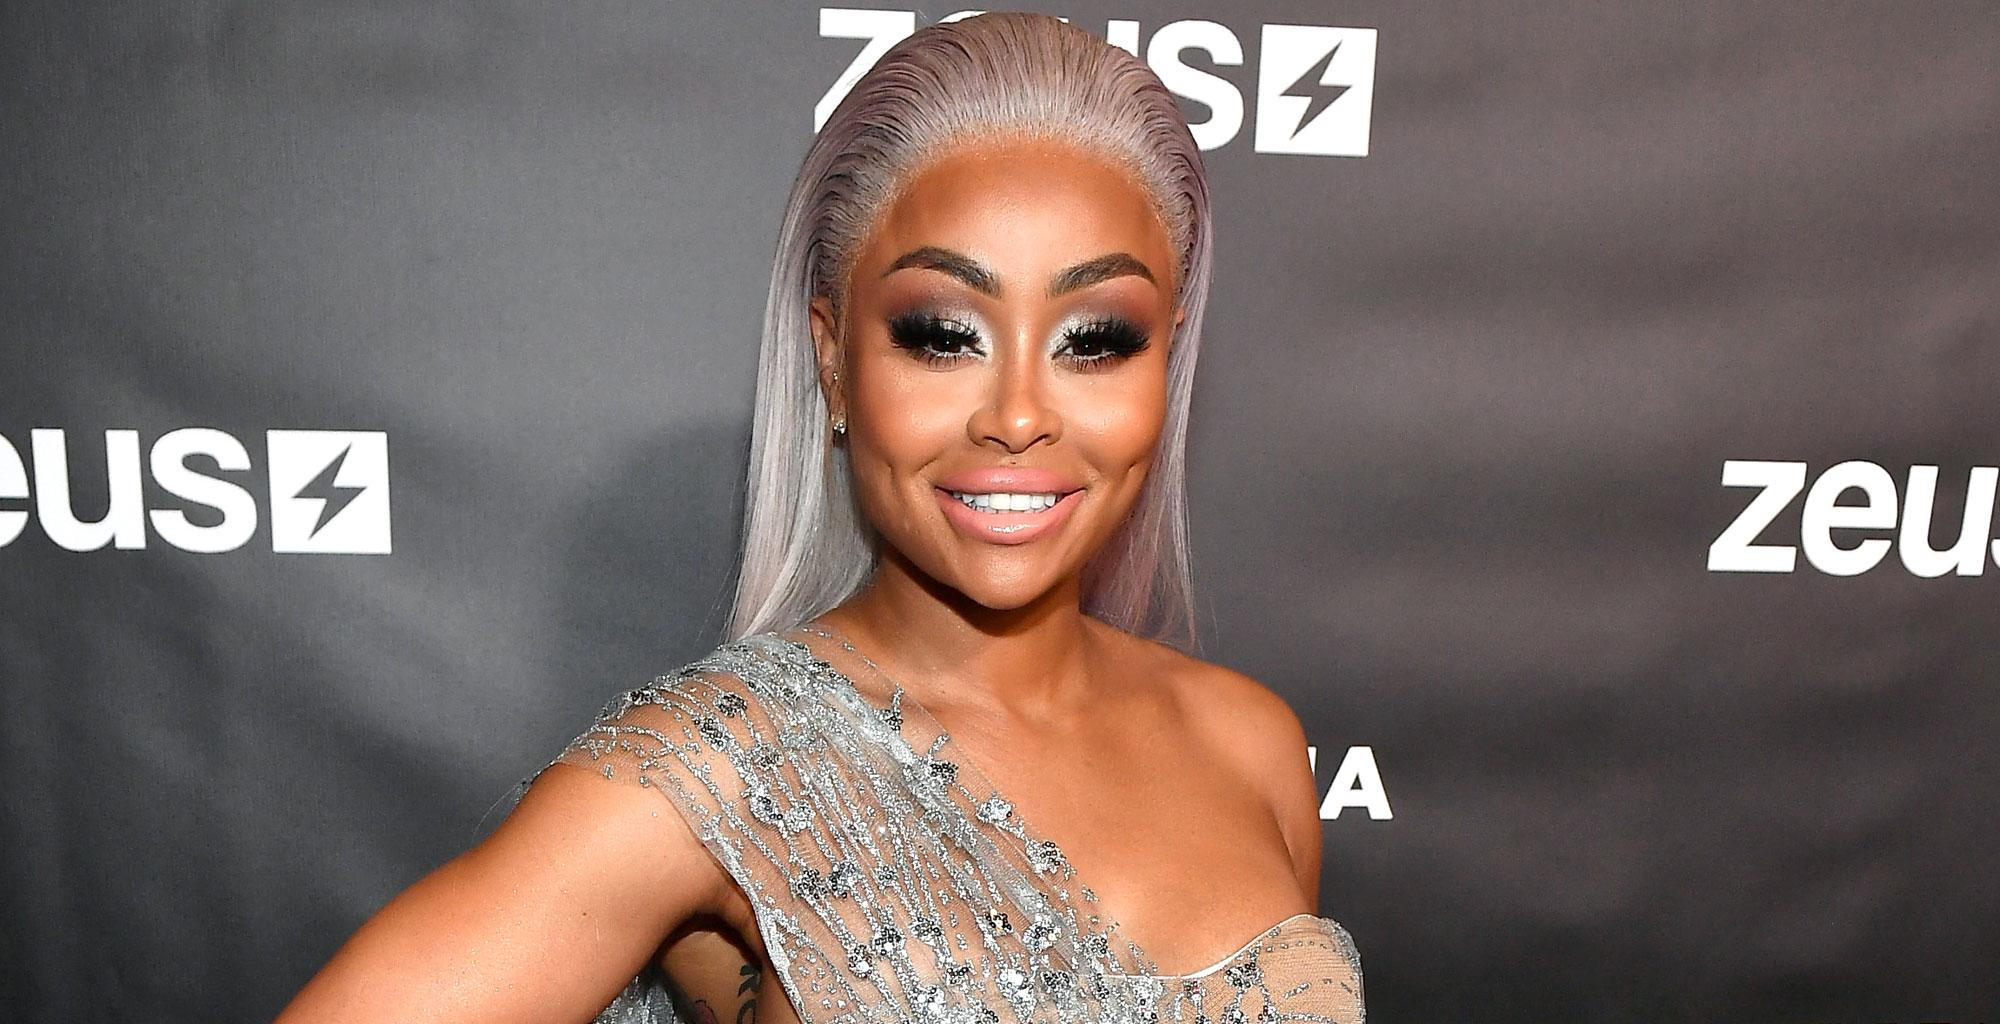 Blac Chyna's Recent Scandalous Video Has Fans Freaking Out: 'That's A Crack Pipe!'